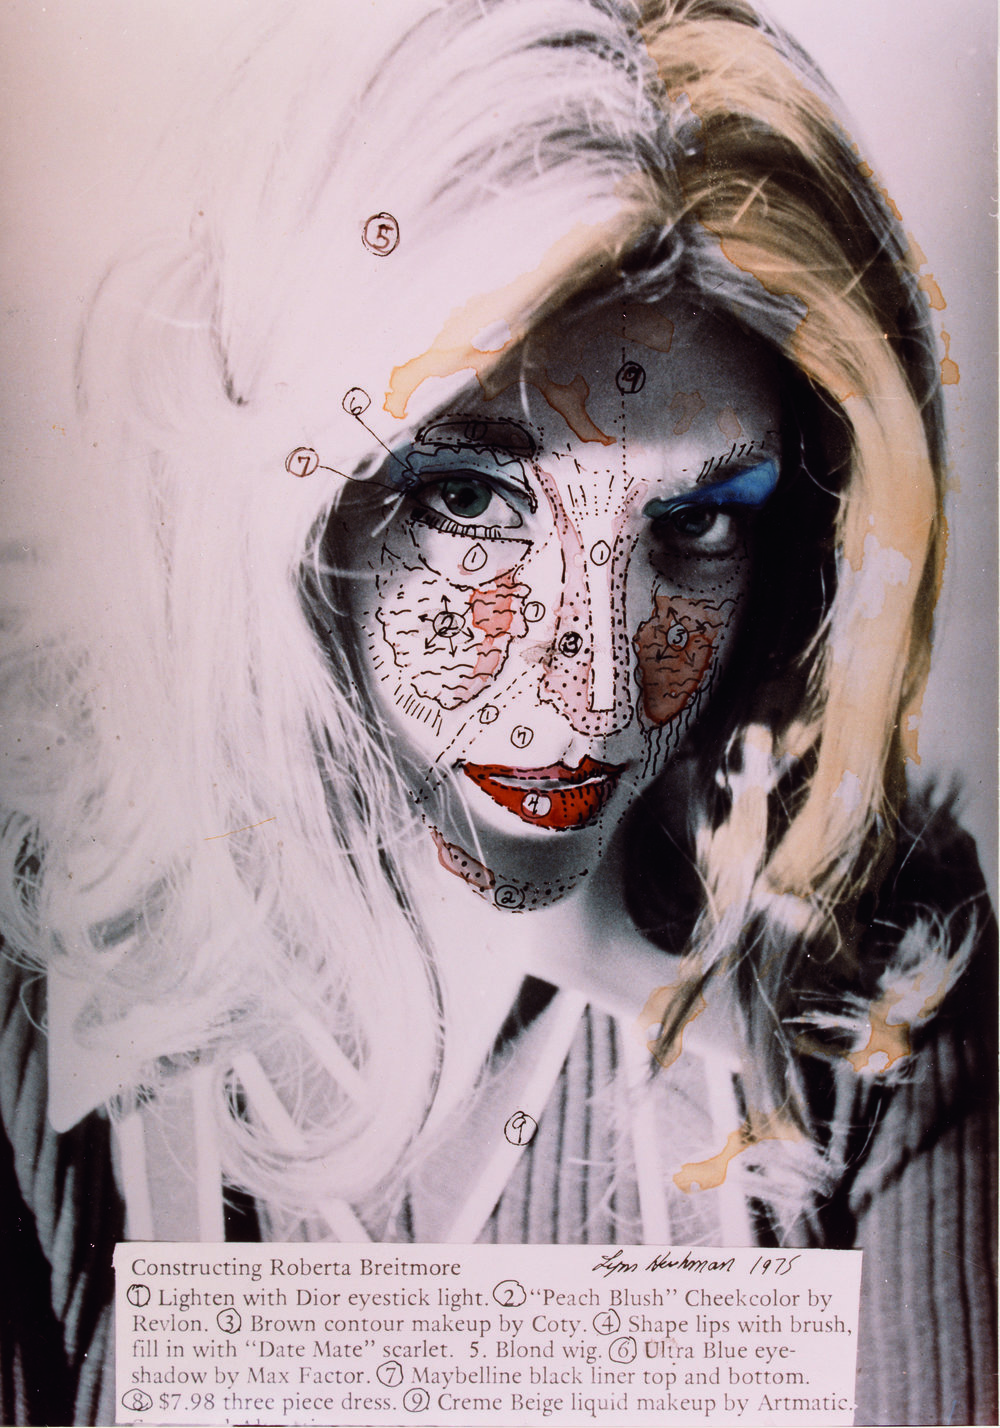 Lynn Hershman Leeson, Roberta Construction Chart #1, 1975, © Lynn Hershman Leeson / The SAMMLUNG VERBUND Collection, Vienna